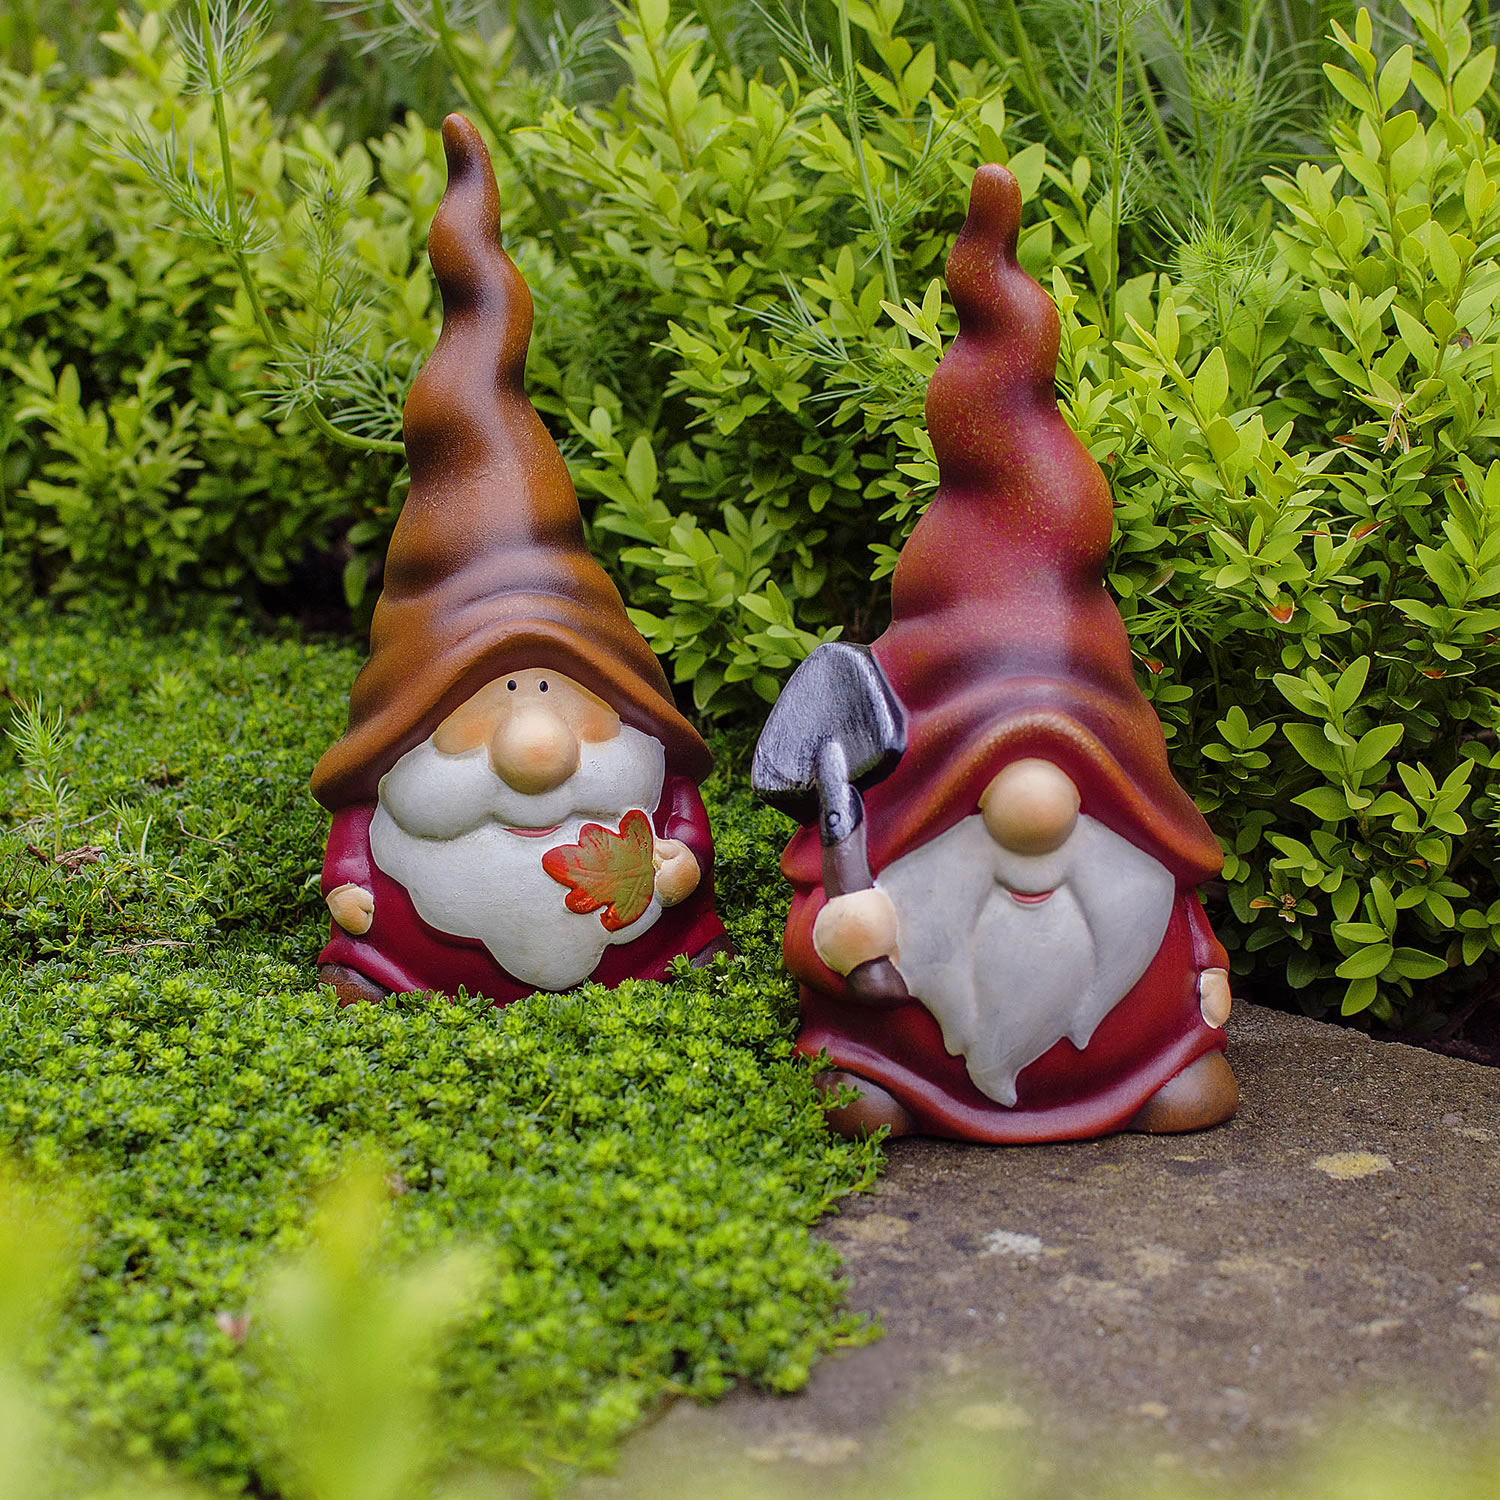 Gnome In Garden: Austin & Basil The Autumnal Terracotta Garden Gnome